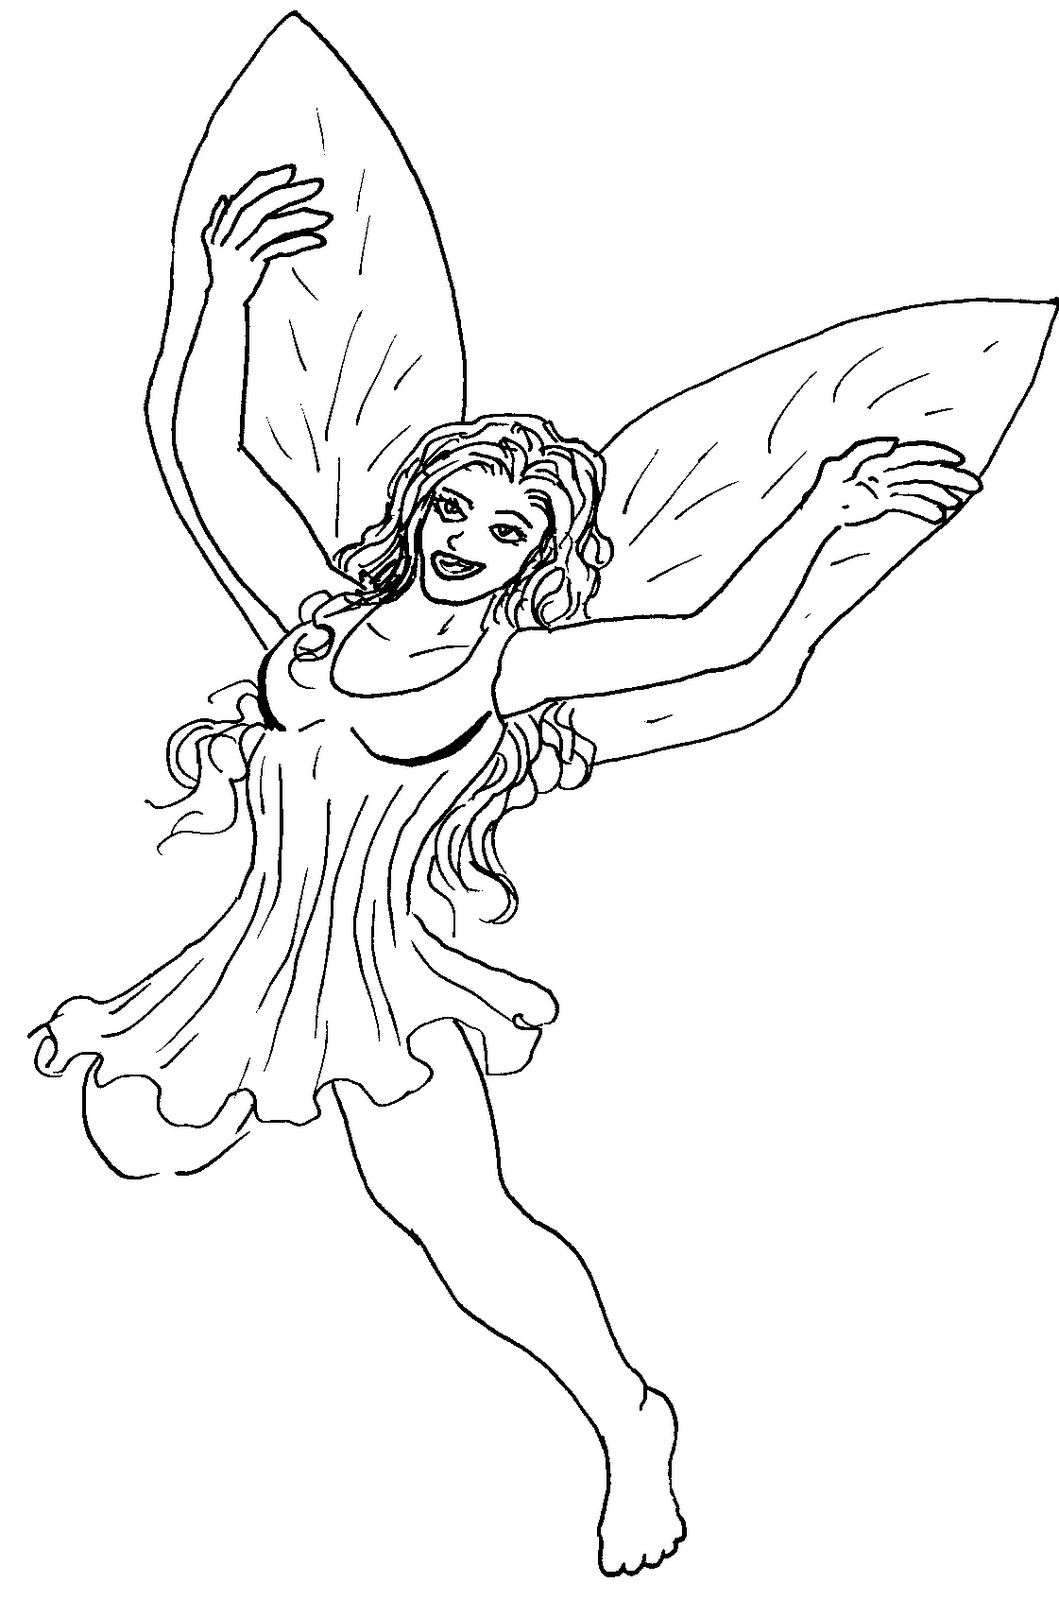 Wayne Tully Fantasy Art: Easy To Draw Fantasy Fairies